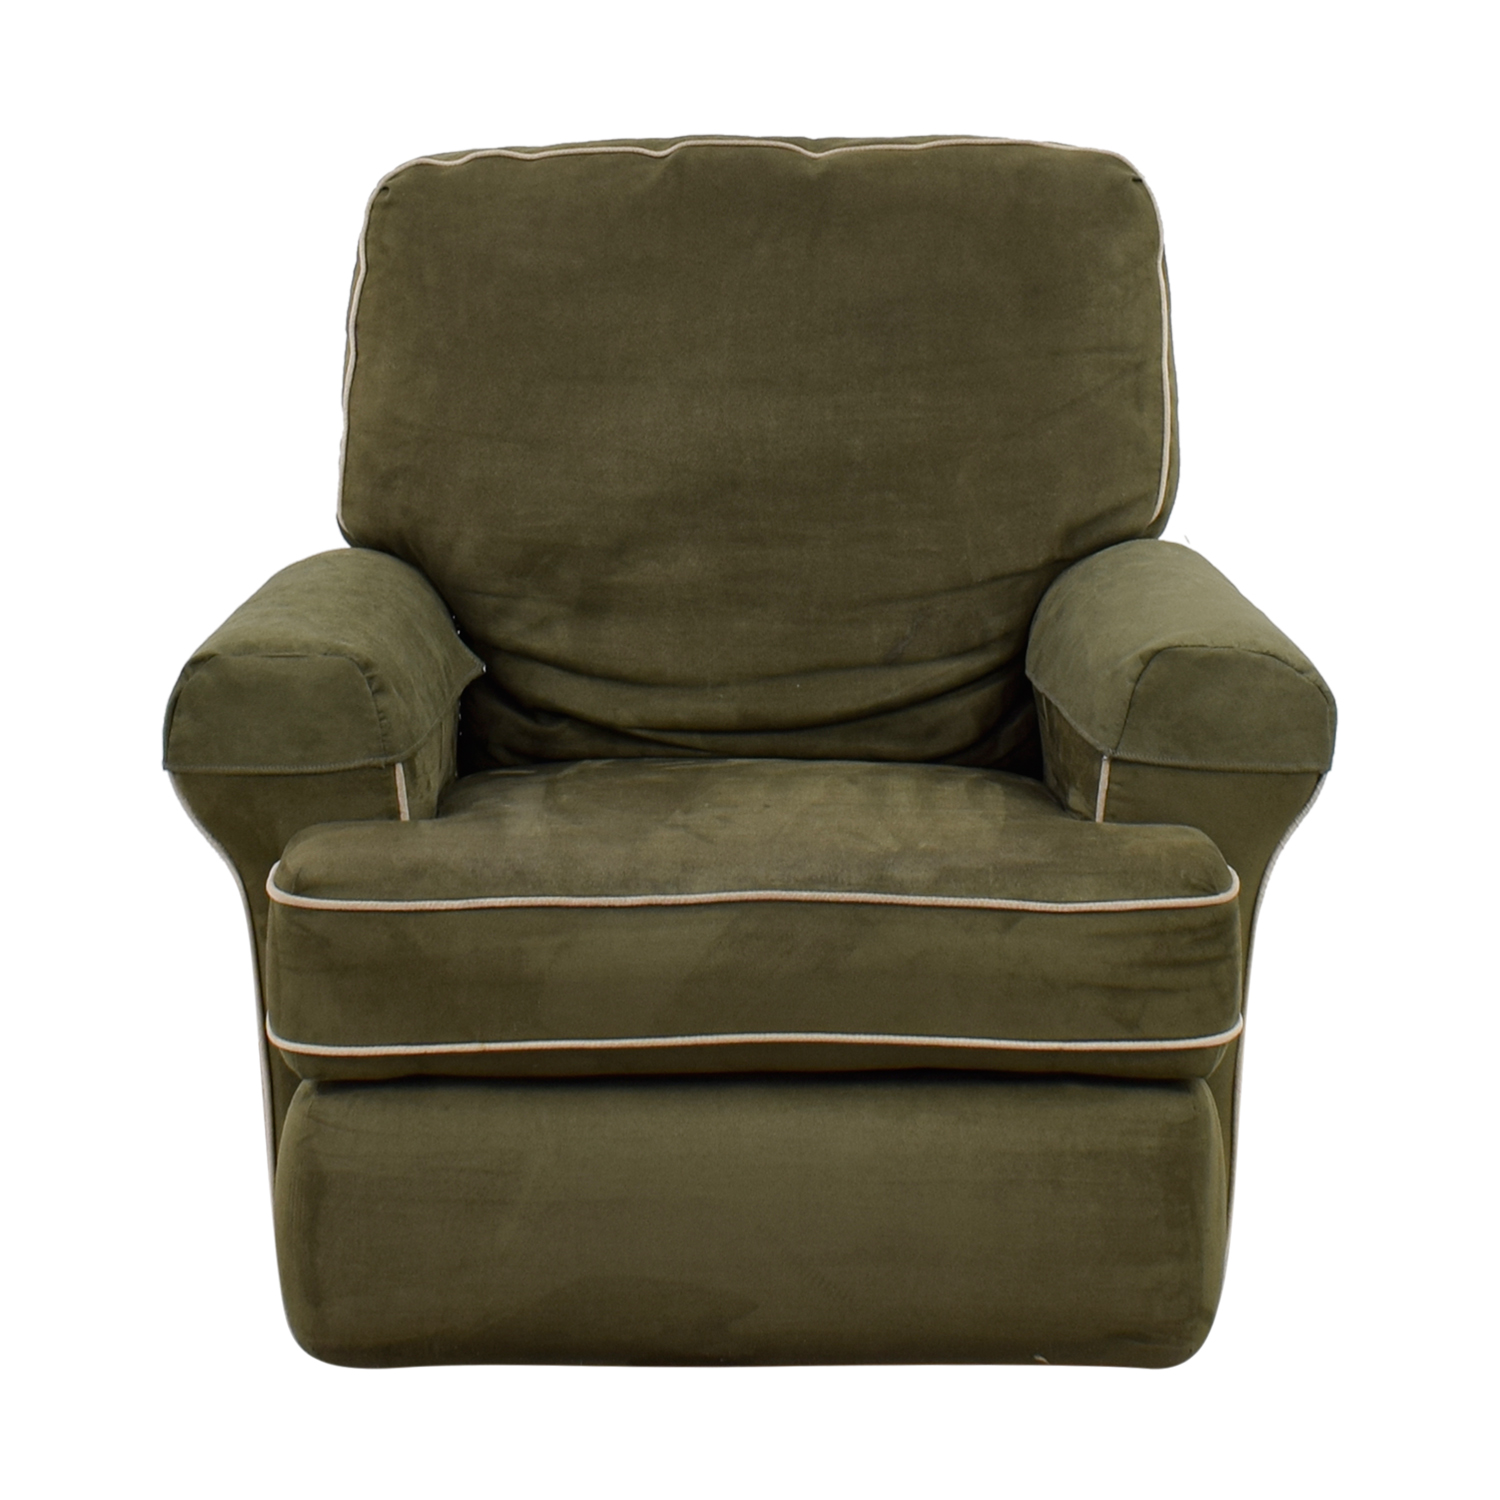 DaVinci DaVinci Power Glider Chair Recliners